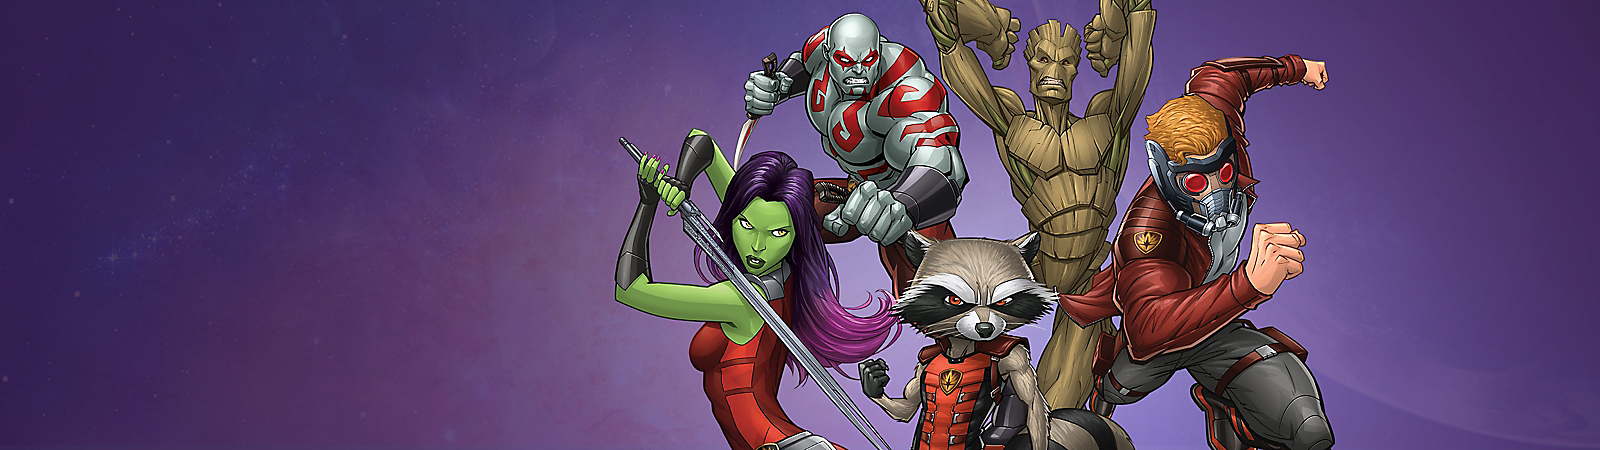 Background image of Guardians of the Galaxy